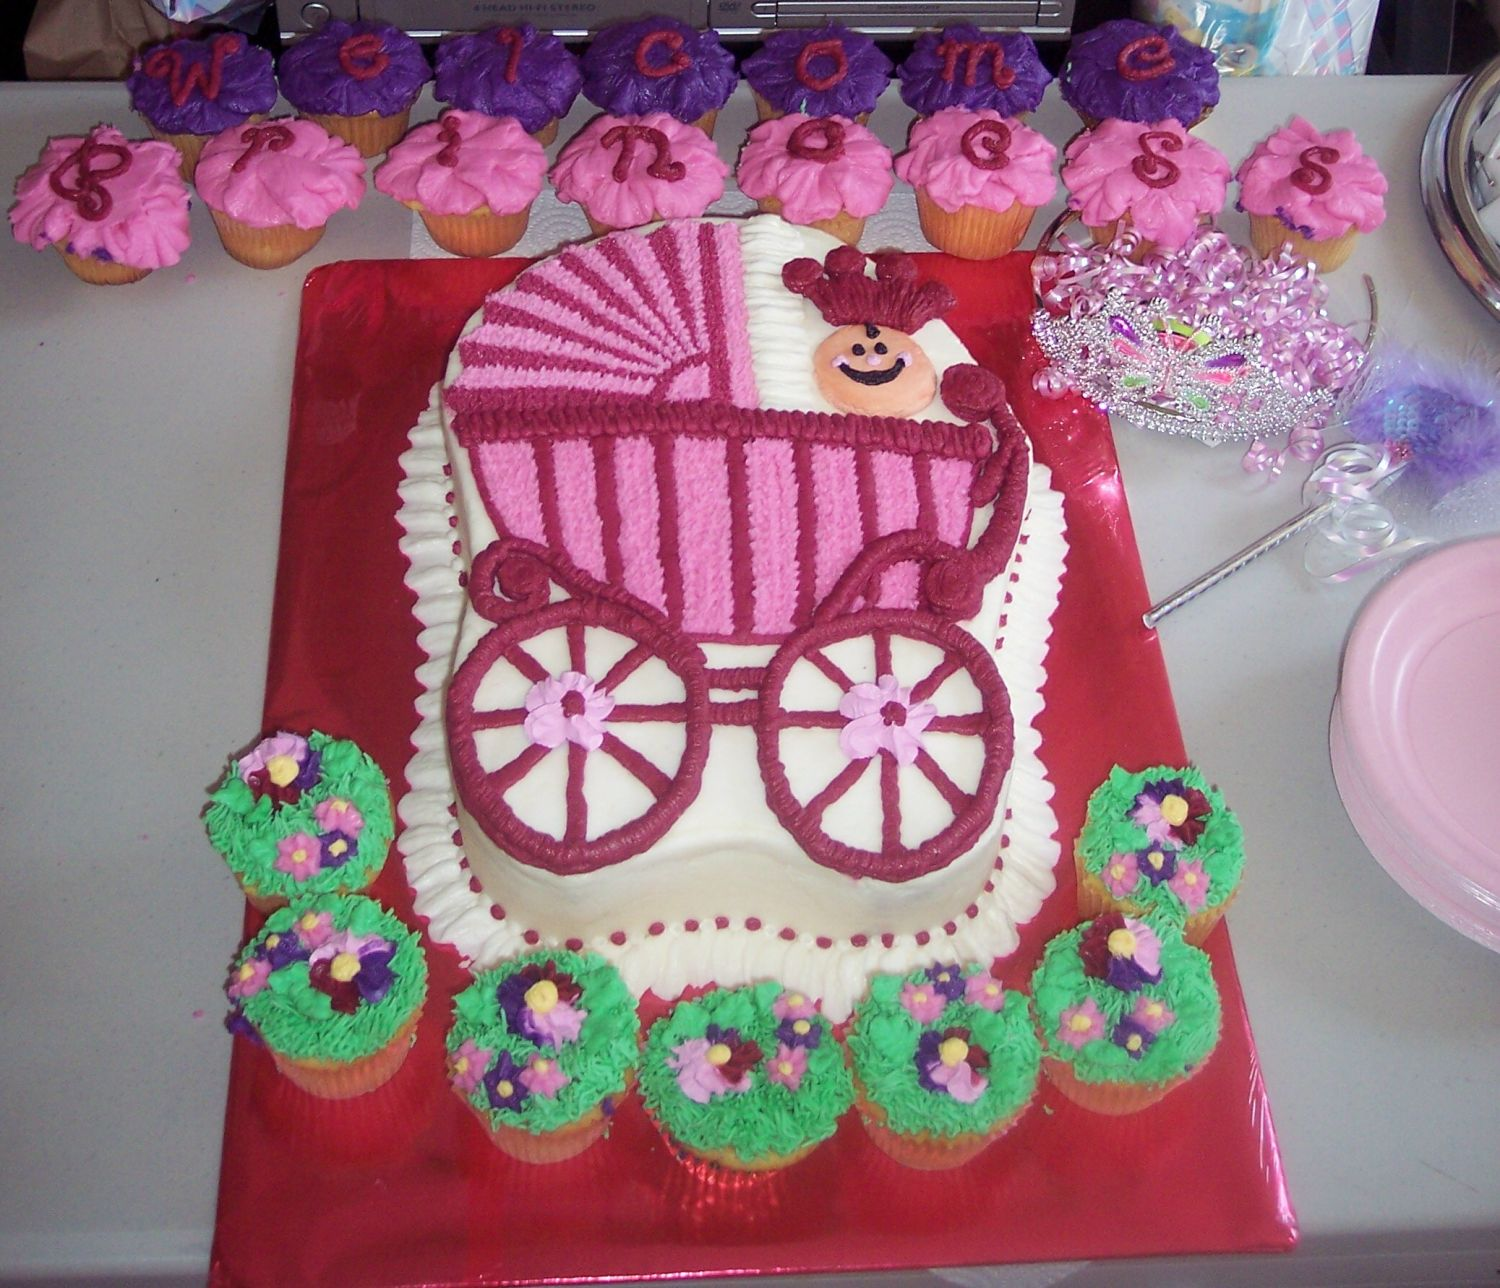 Carriage cake inspired by one done from a pan HOWEVER I didn't have the pan so I hand carved the caked and used a toothpick to draw all the lines. Everything is Buttercream Dream.